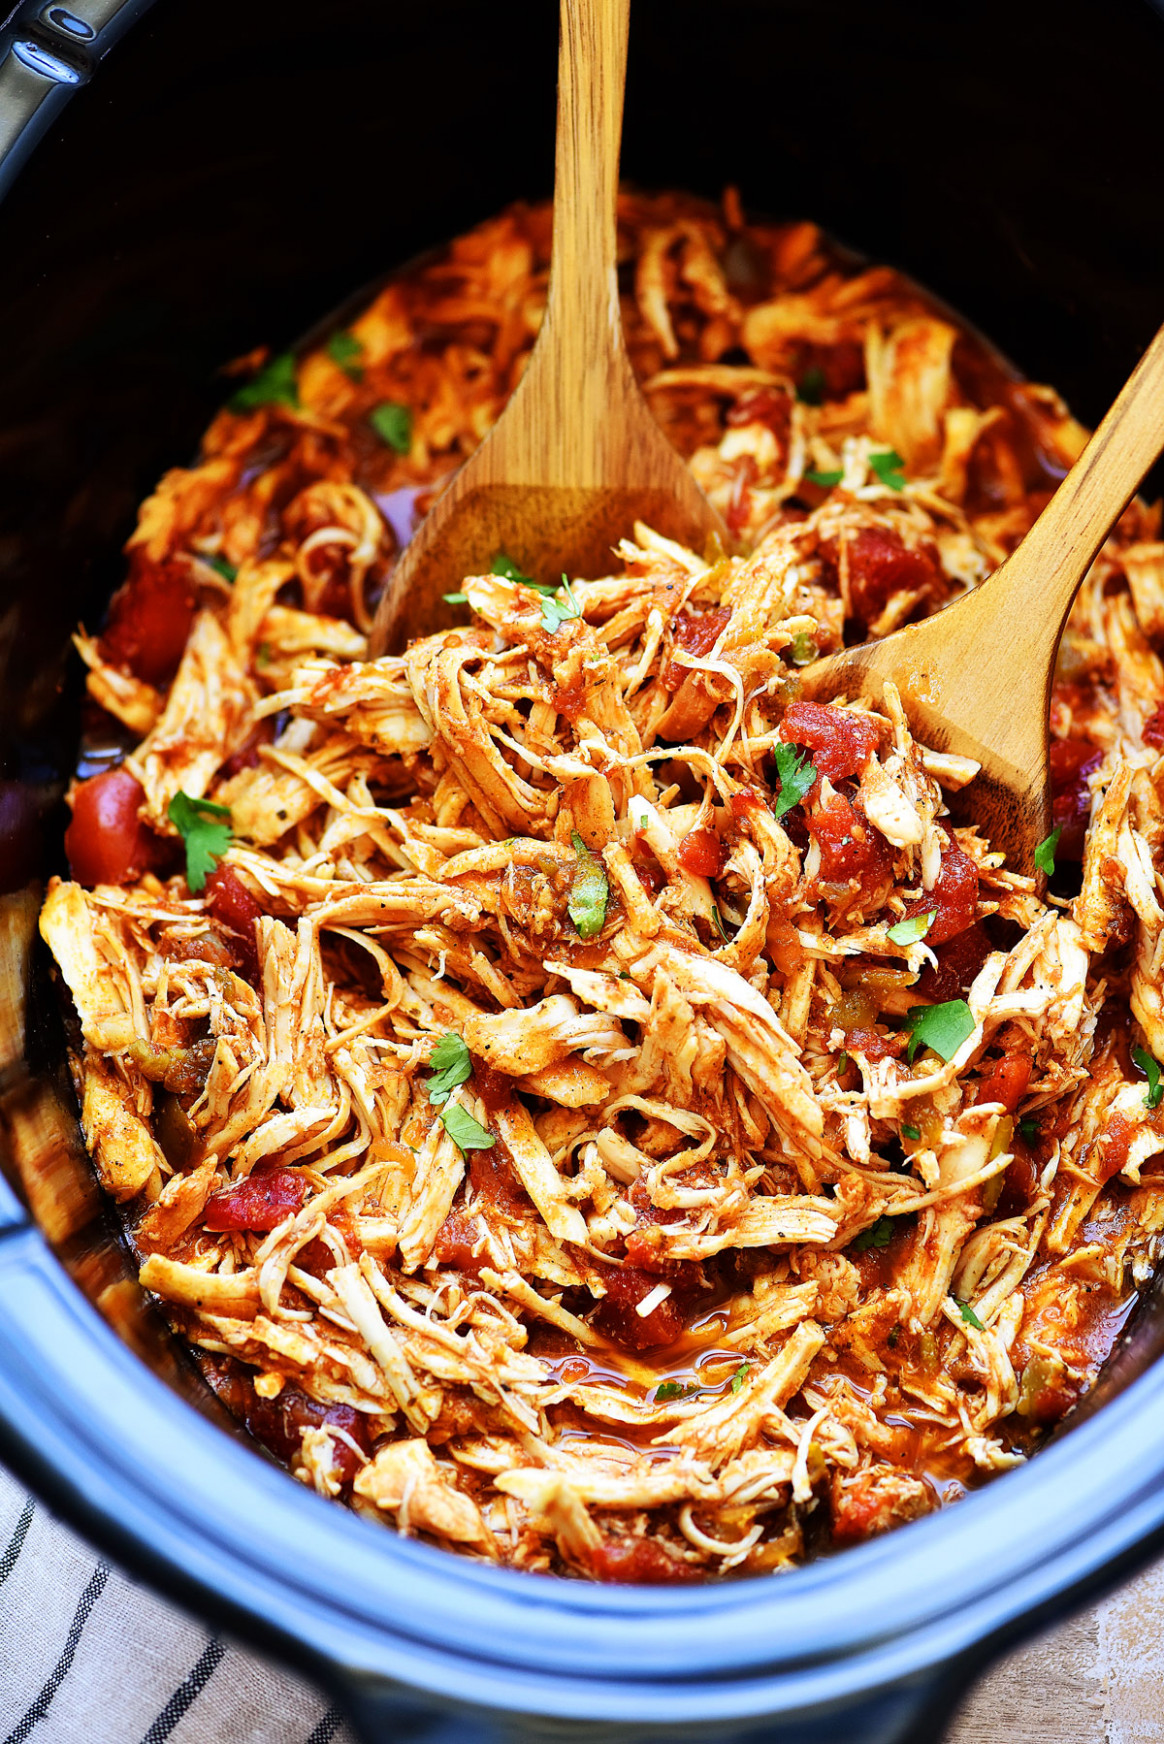 Slow Cooker Mexican Shredded Chicken - recipes with shredded chicken